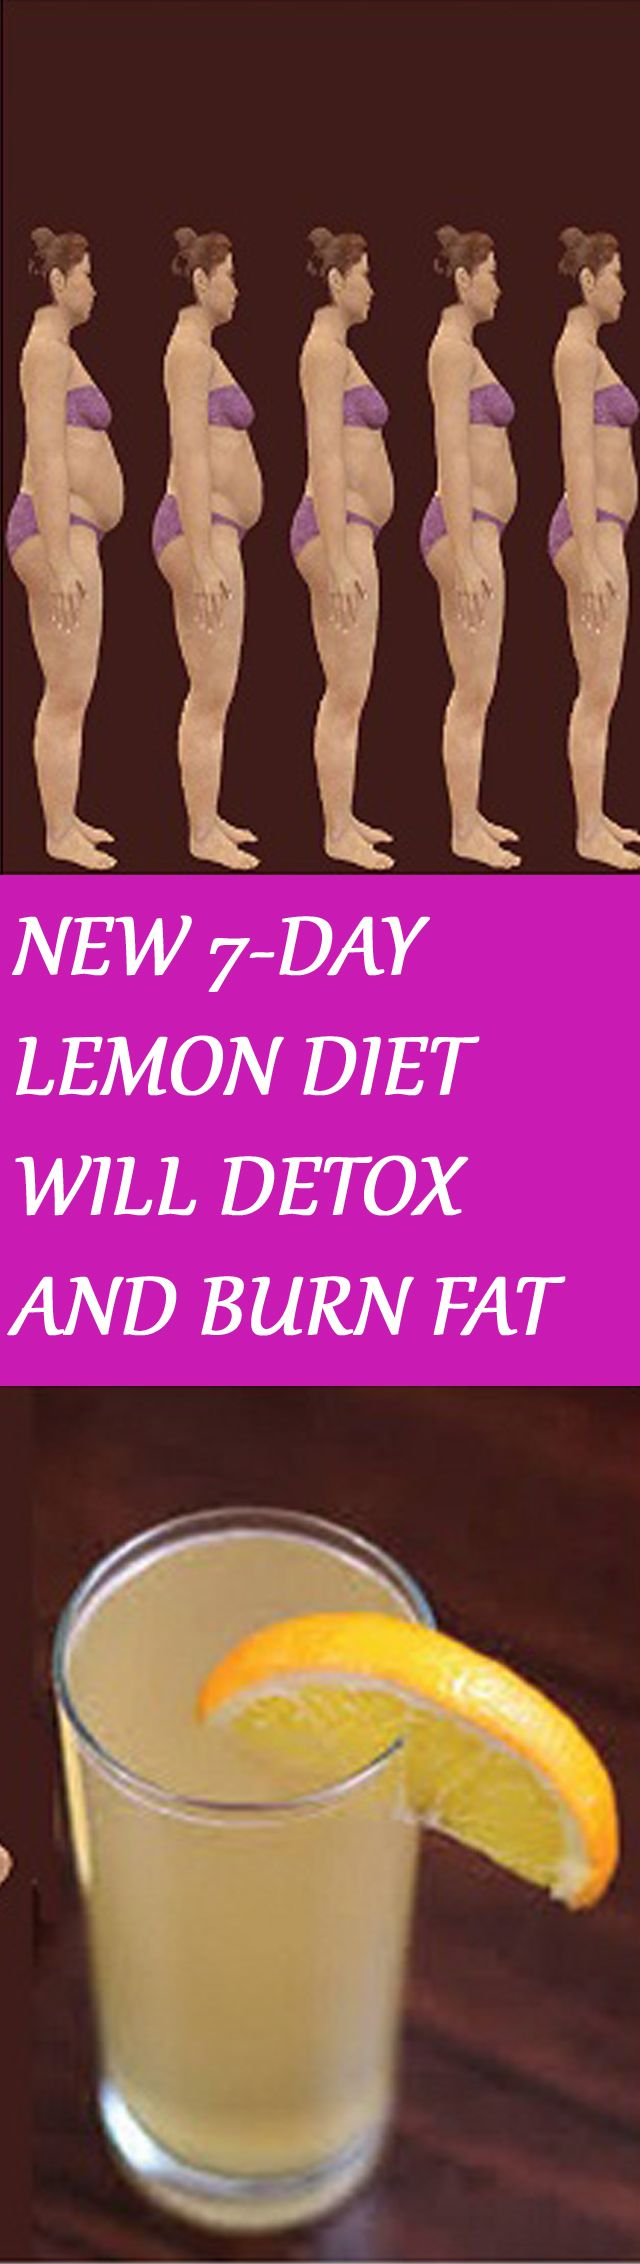 NEW 7-DAY LEMON DIET WILL DETOX AND BURN FAT Click the image for more instructions :D